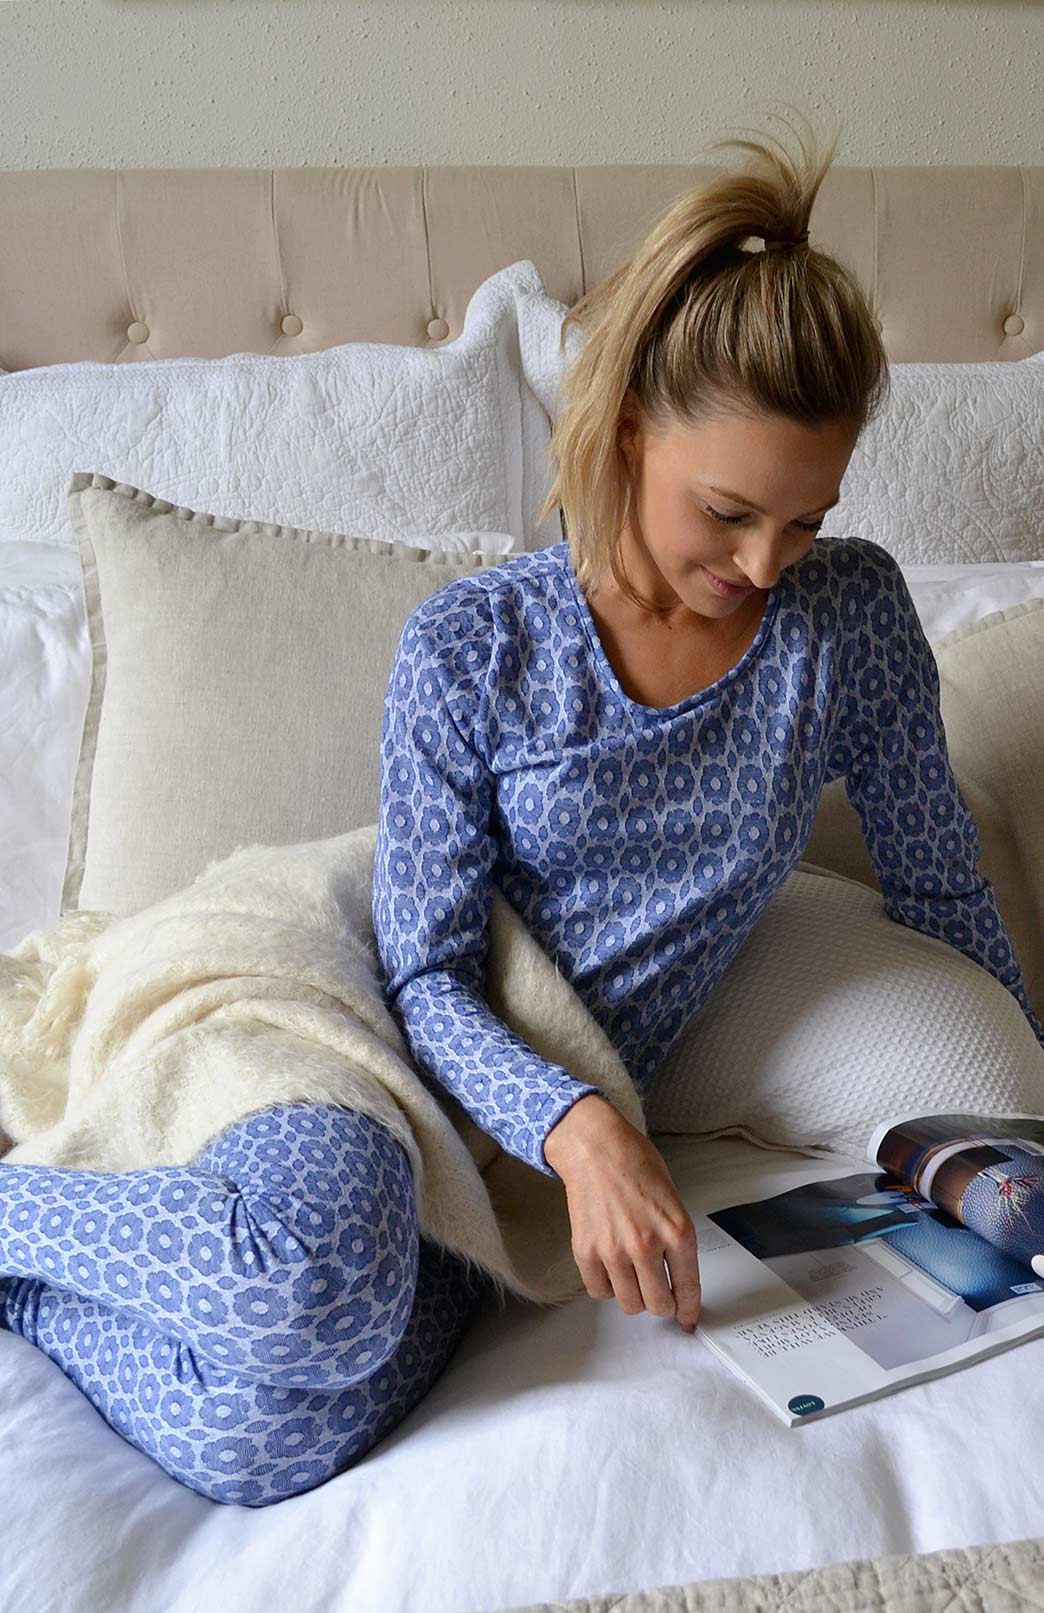 Pyjama Set - Women's Blue Daisy Patterned Wool Matching Pyjama Set of Long Sleeved Top and Tights - Smitten Merino Tasmania Australia